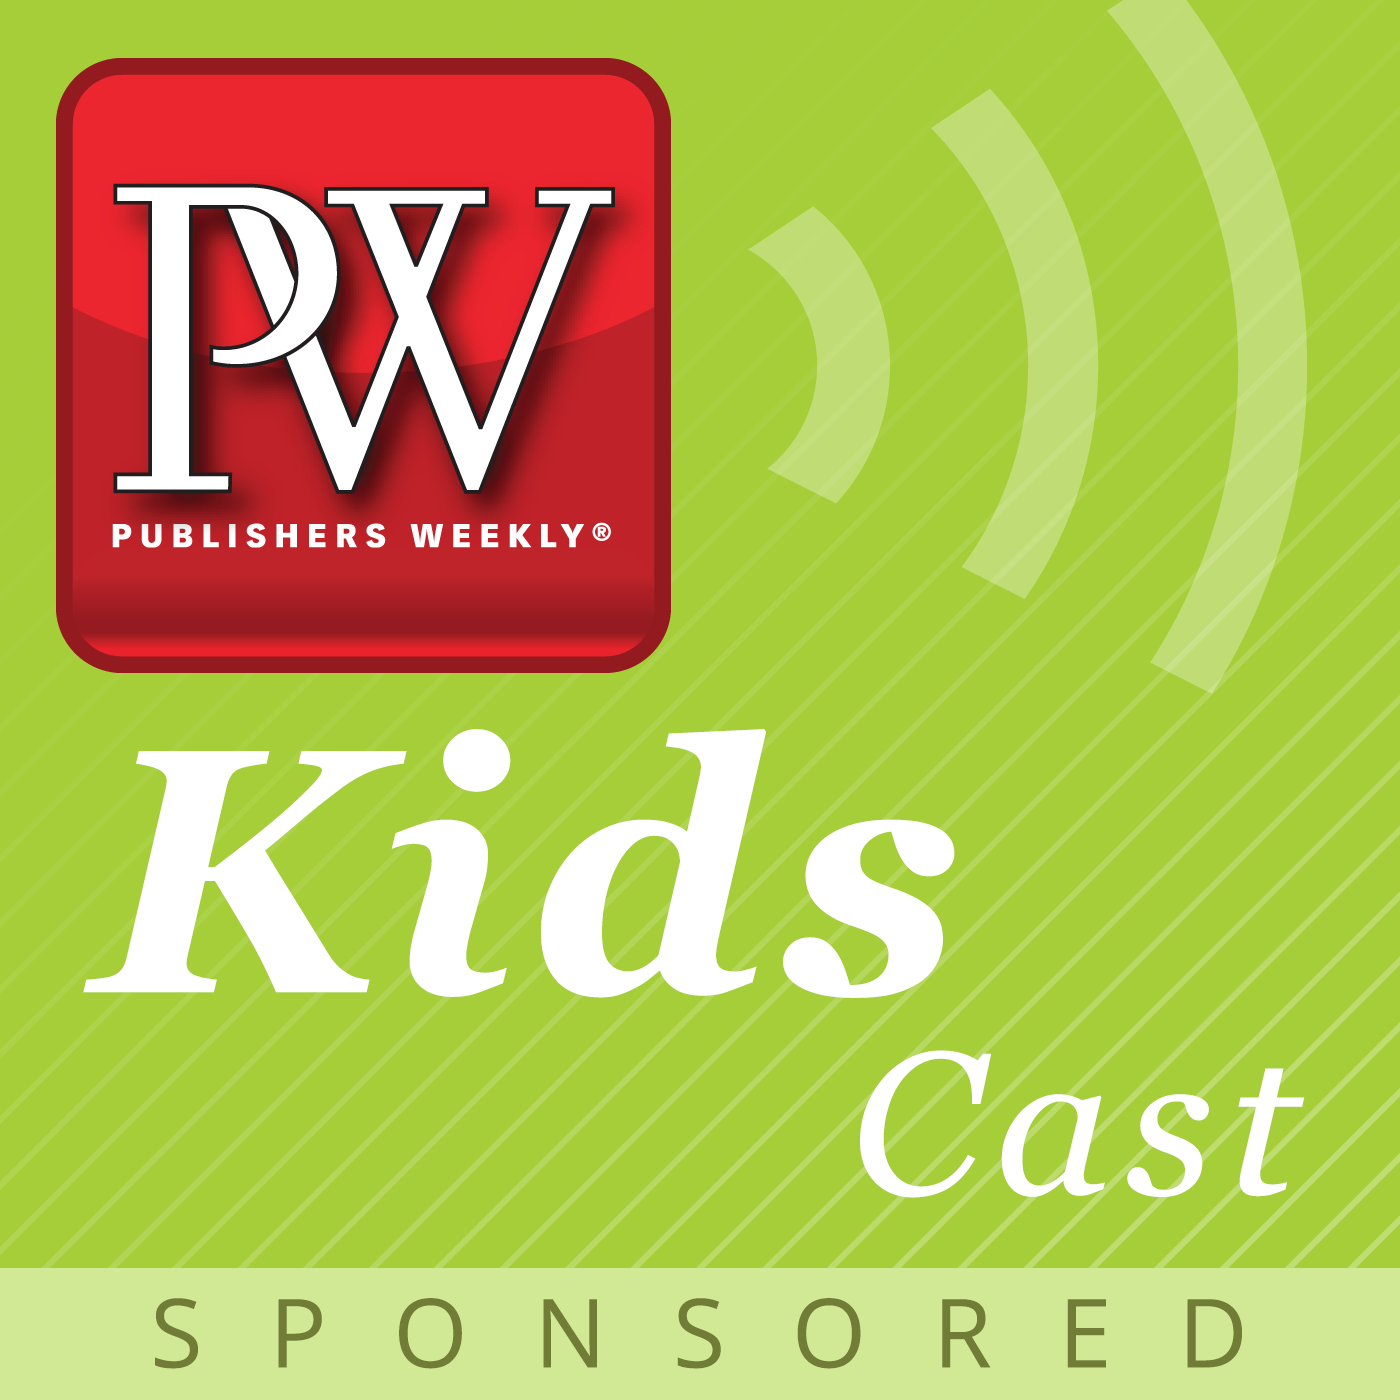 PW KidsCast: A Conversation with Rashad Jennings